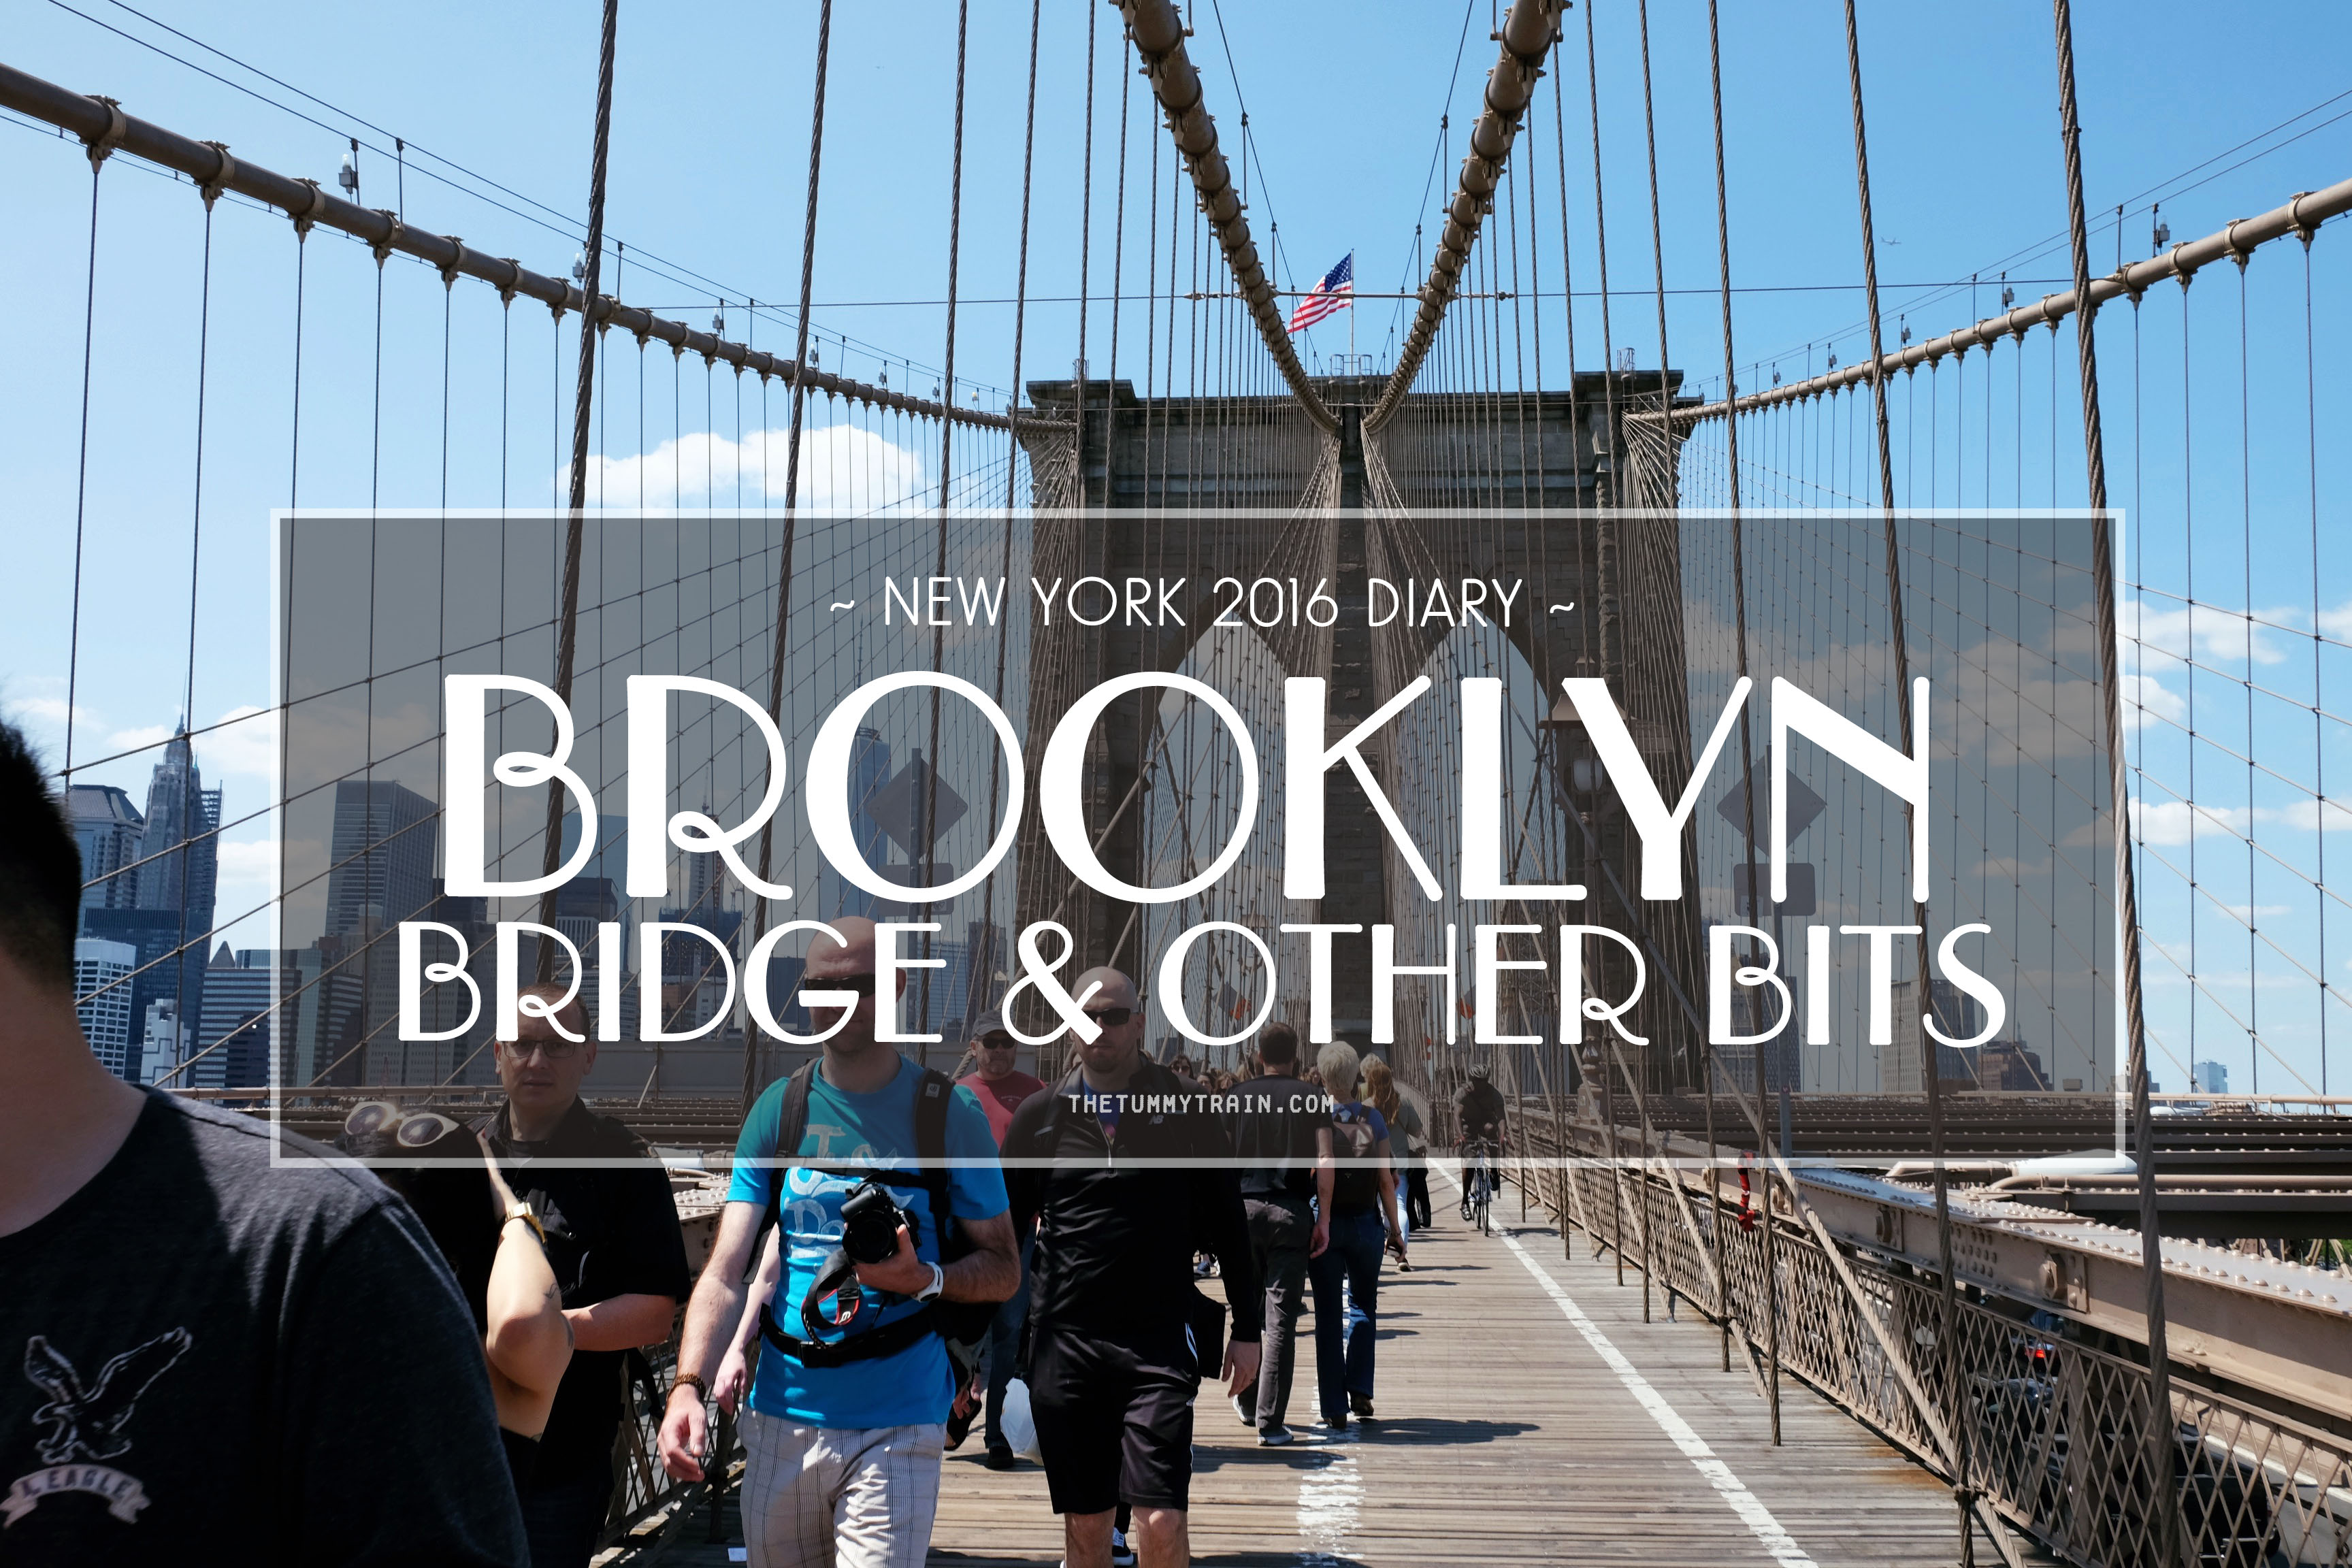 Brooklyn Title - USA 2016 Travel Diary: My adventures in crossing the Brooklyn Bridge